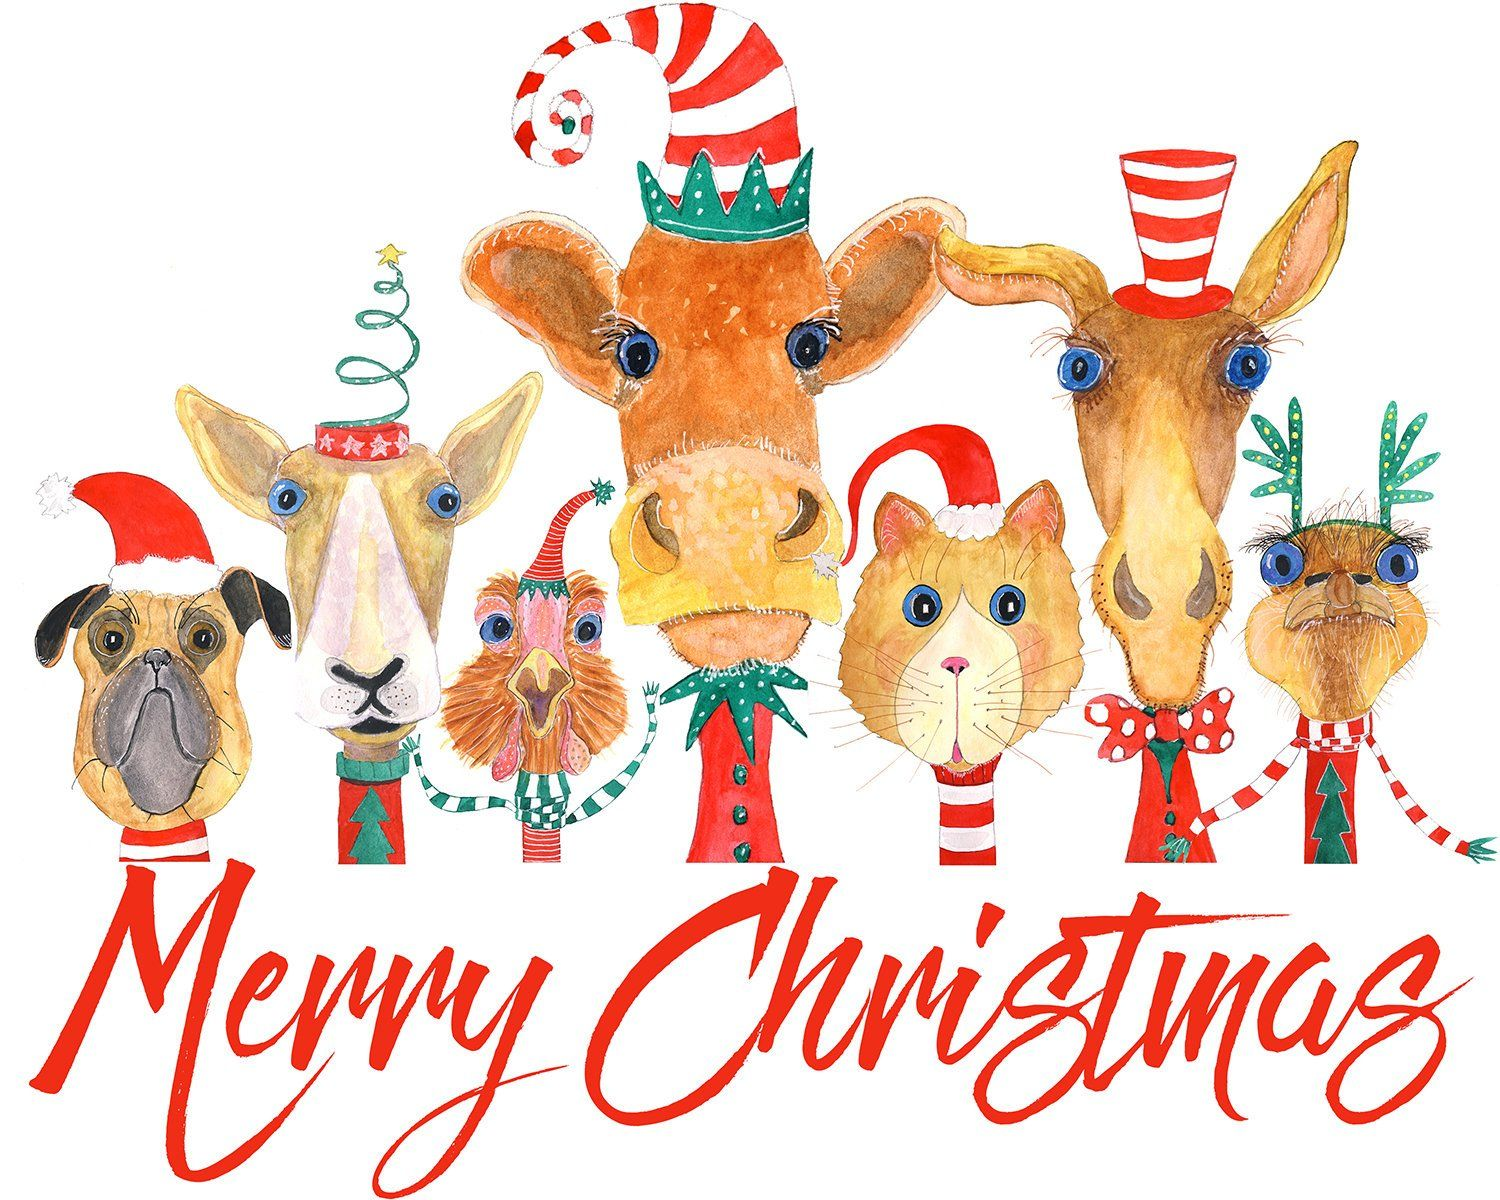 Merry Christmas Illustrated animal card, whimsical animals.